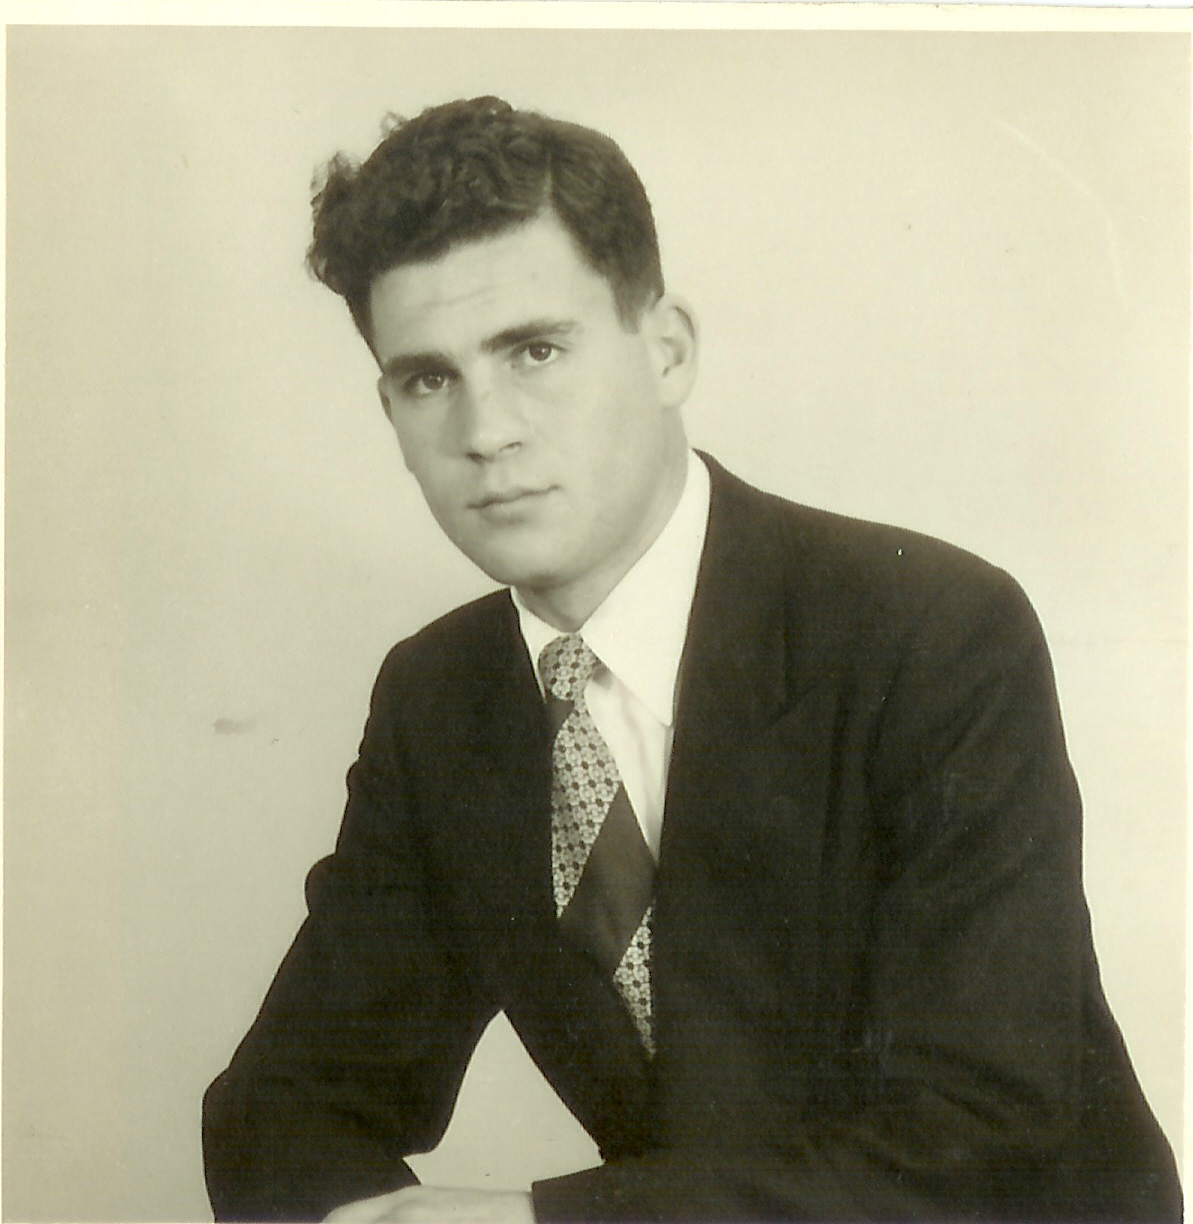 The Late Irving Glazer z'l who fell in the Sinai Campaign 1956